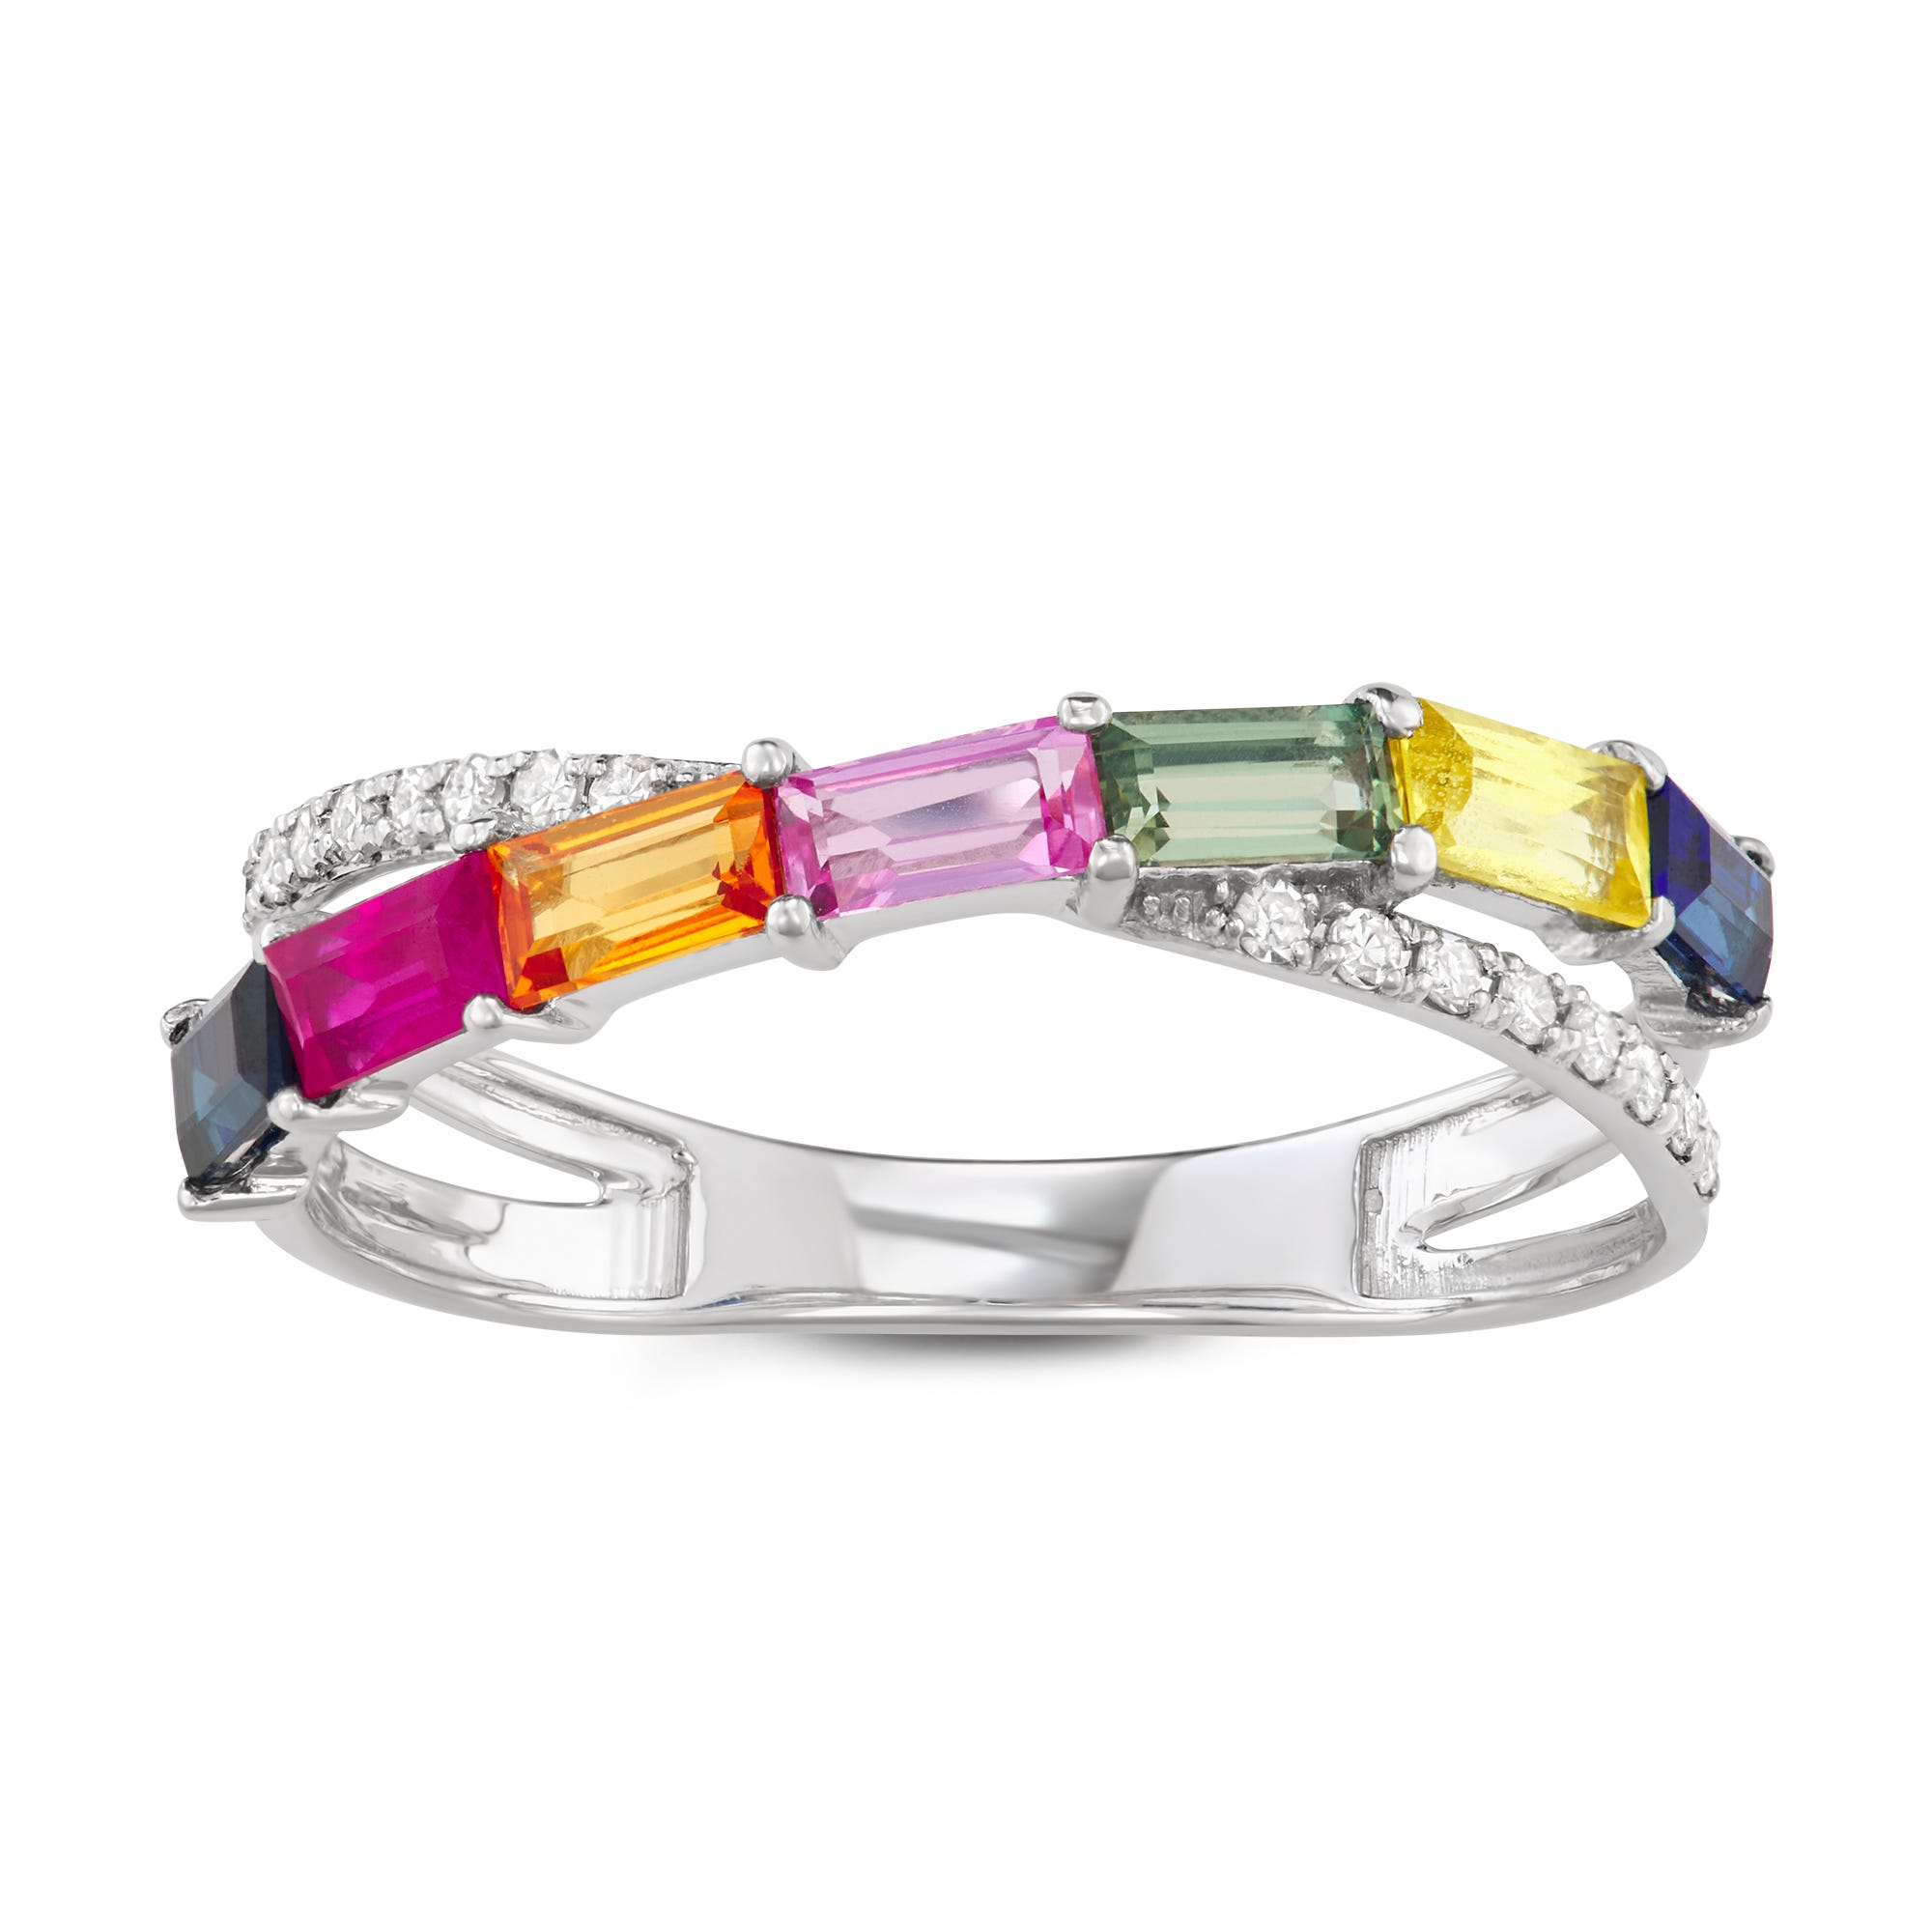 Rainbow Sapphire & Diamond Twist Ring in 14k White Gold